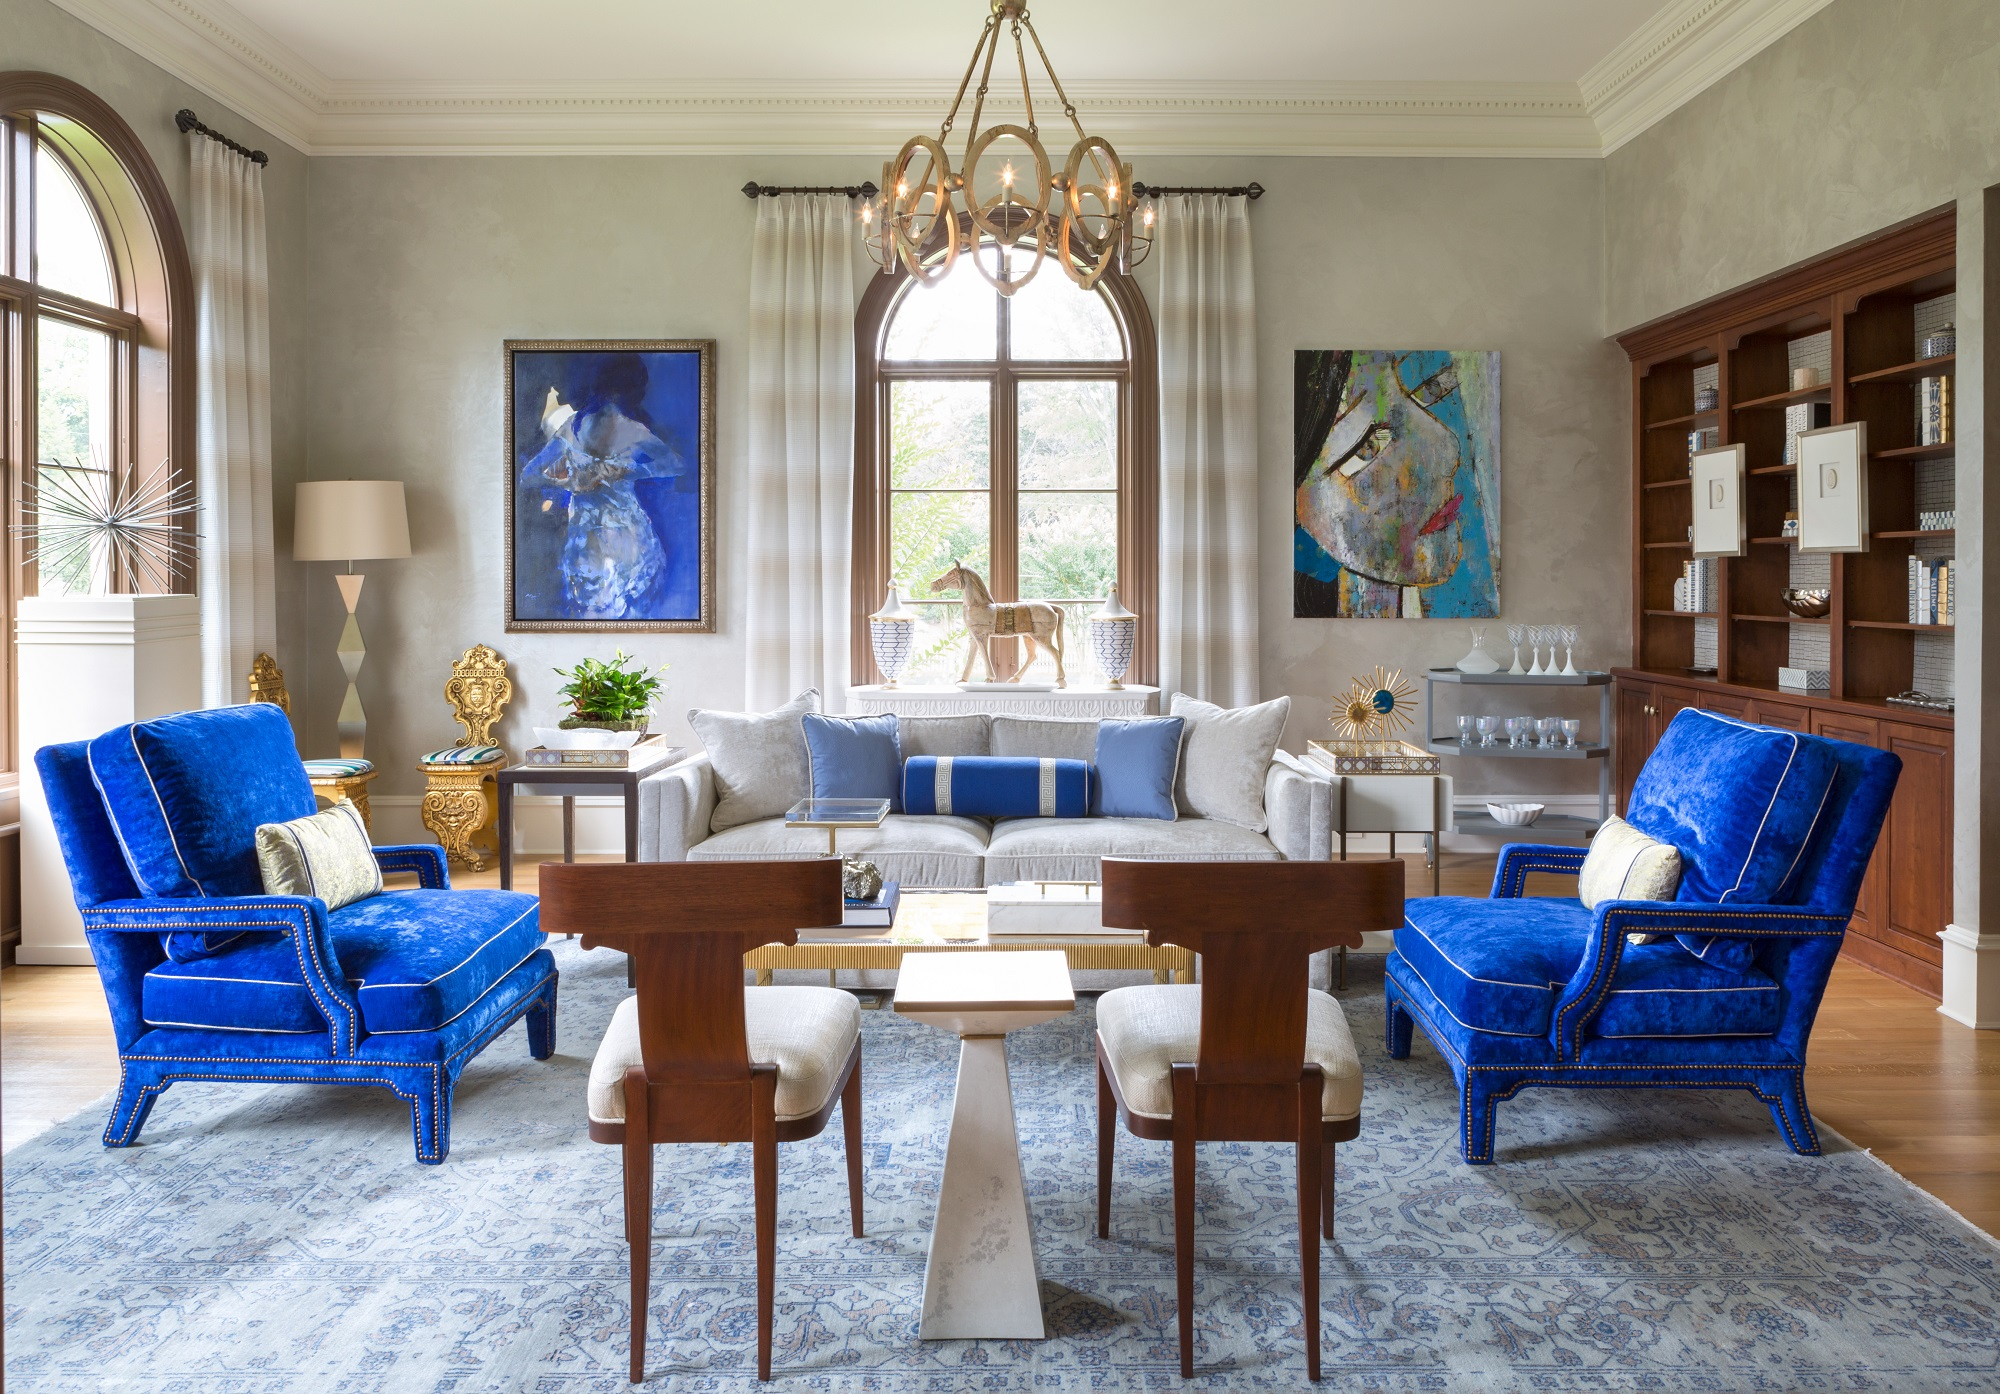 Lorna-Gross-Interior-Design-Maryland-Living-Room